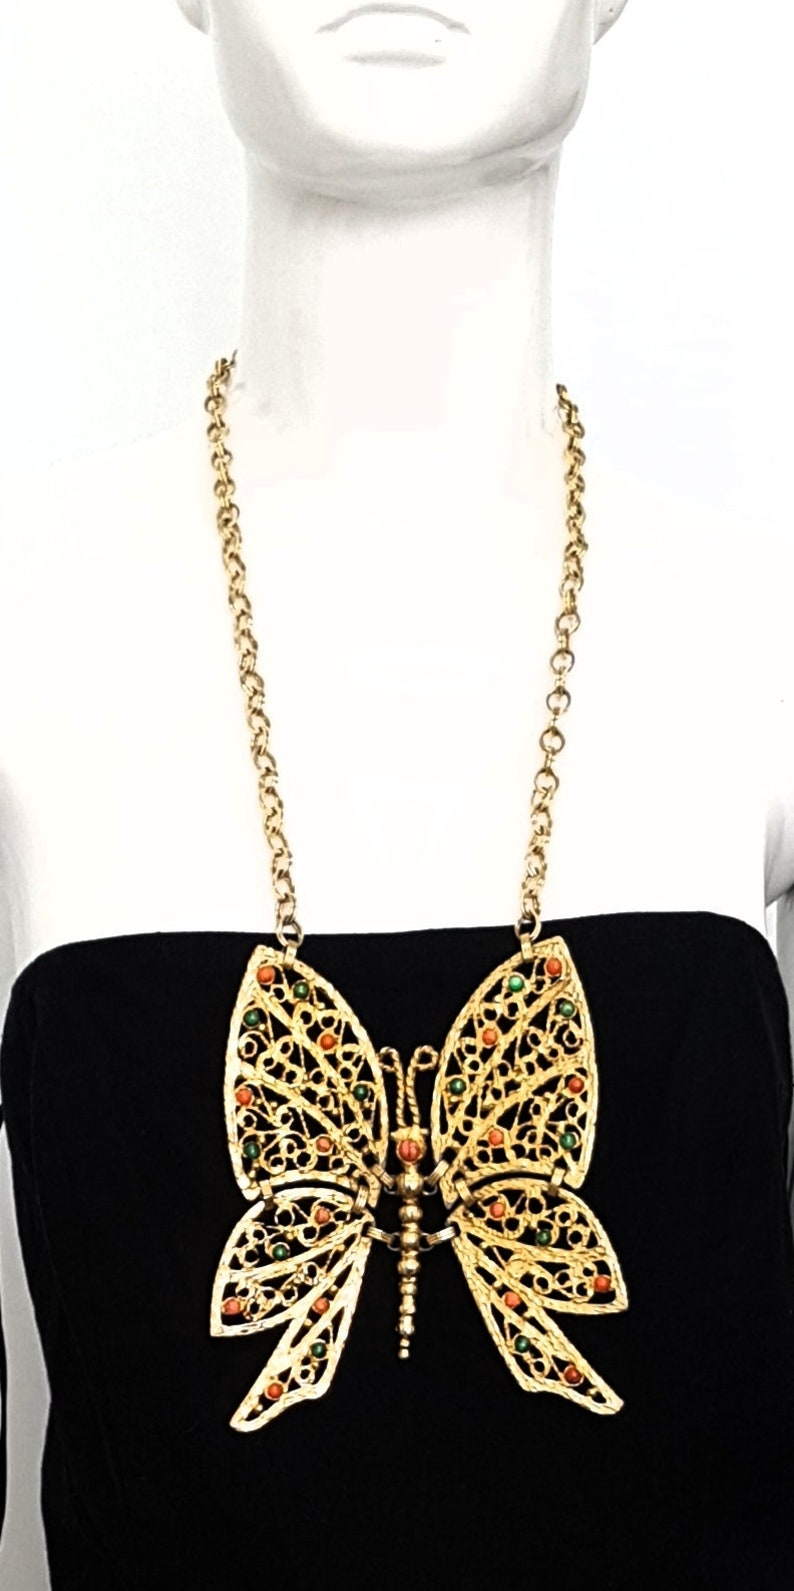 Vintage 60\u2019s DEC JULIANA Delizza Elster Italy Huge Gold \u2018Swinging\u2019 BUTTERFLY Statement Pendant Necklace w Turquoise /& Red Coral Stones